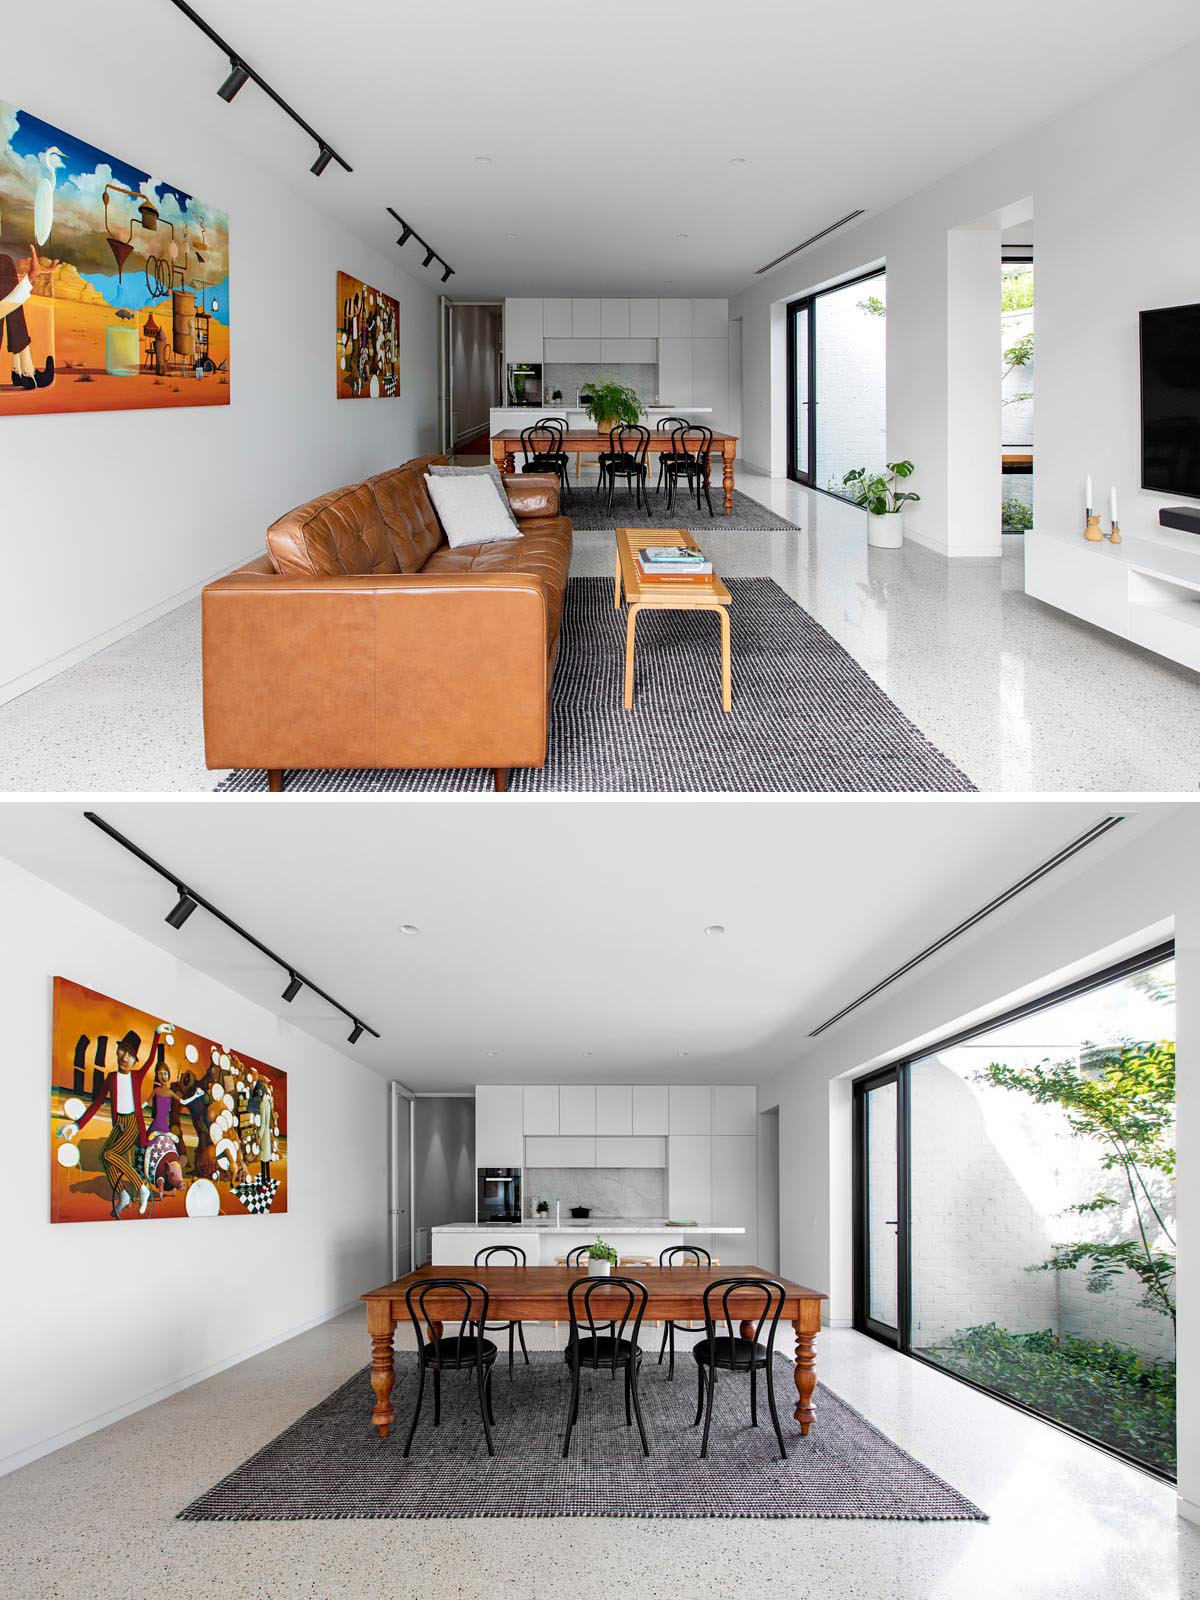 The social areas of this mdoern home, like the living room, dining area, and kitchen, share the same polished concrete floor. This helps to create a seamless look and due to its light color, it helps reflect light throughout the space.